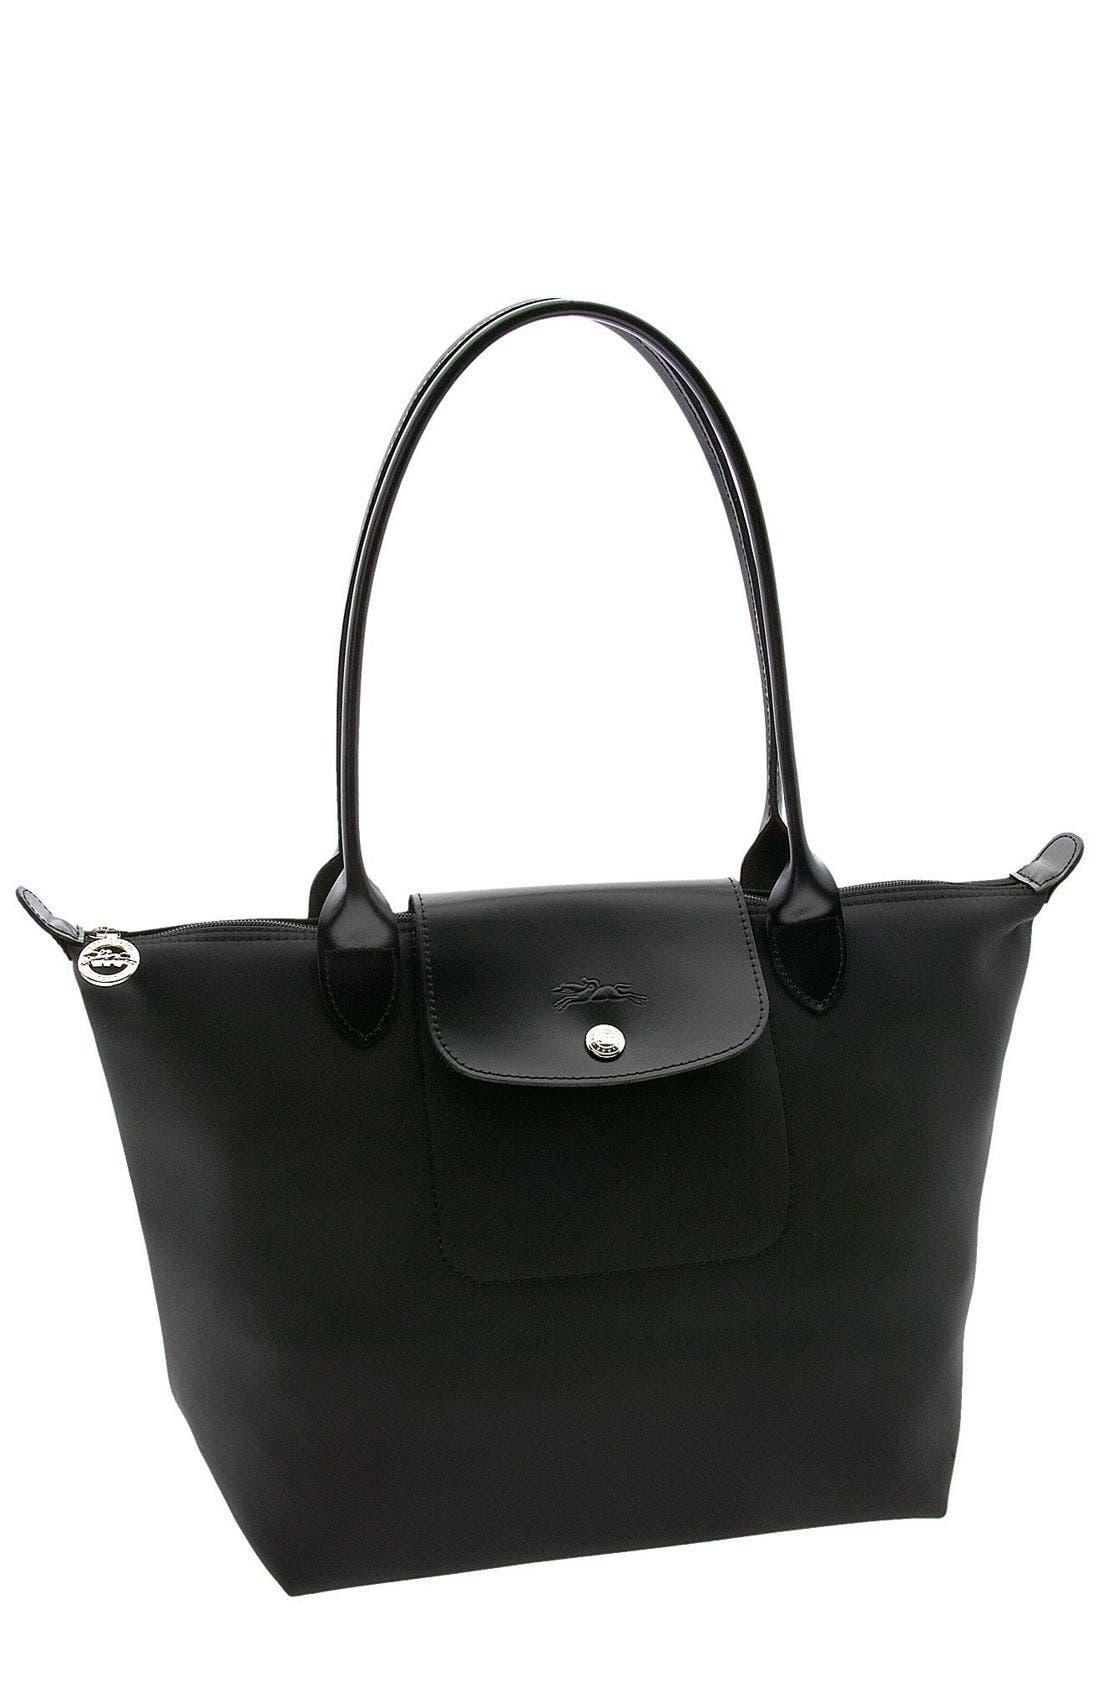 Alternate Image 1 Selected - Longchamp 'Small Planetes' Tote